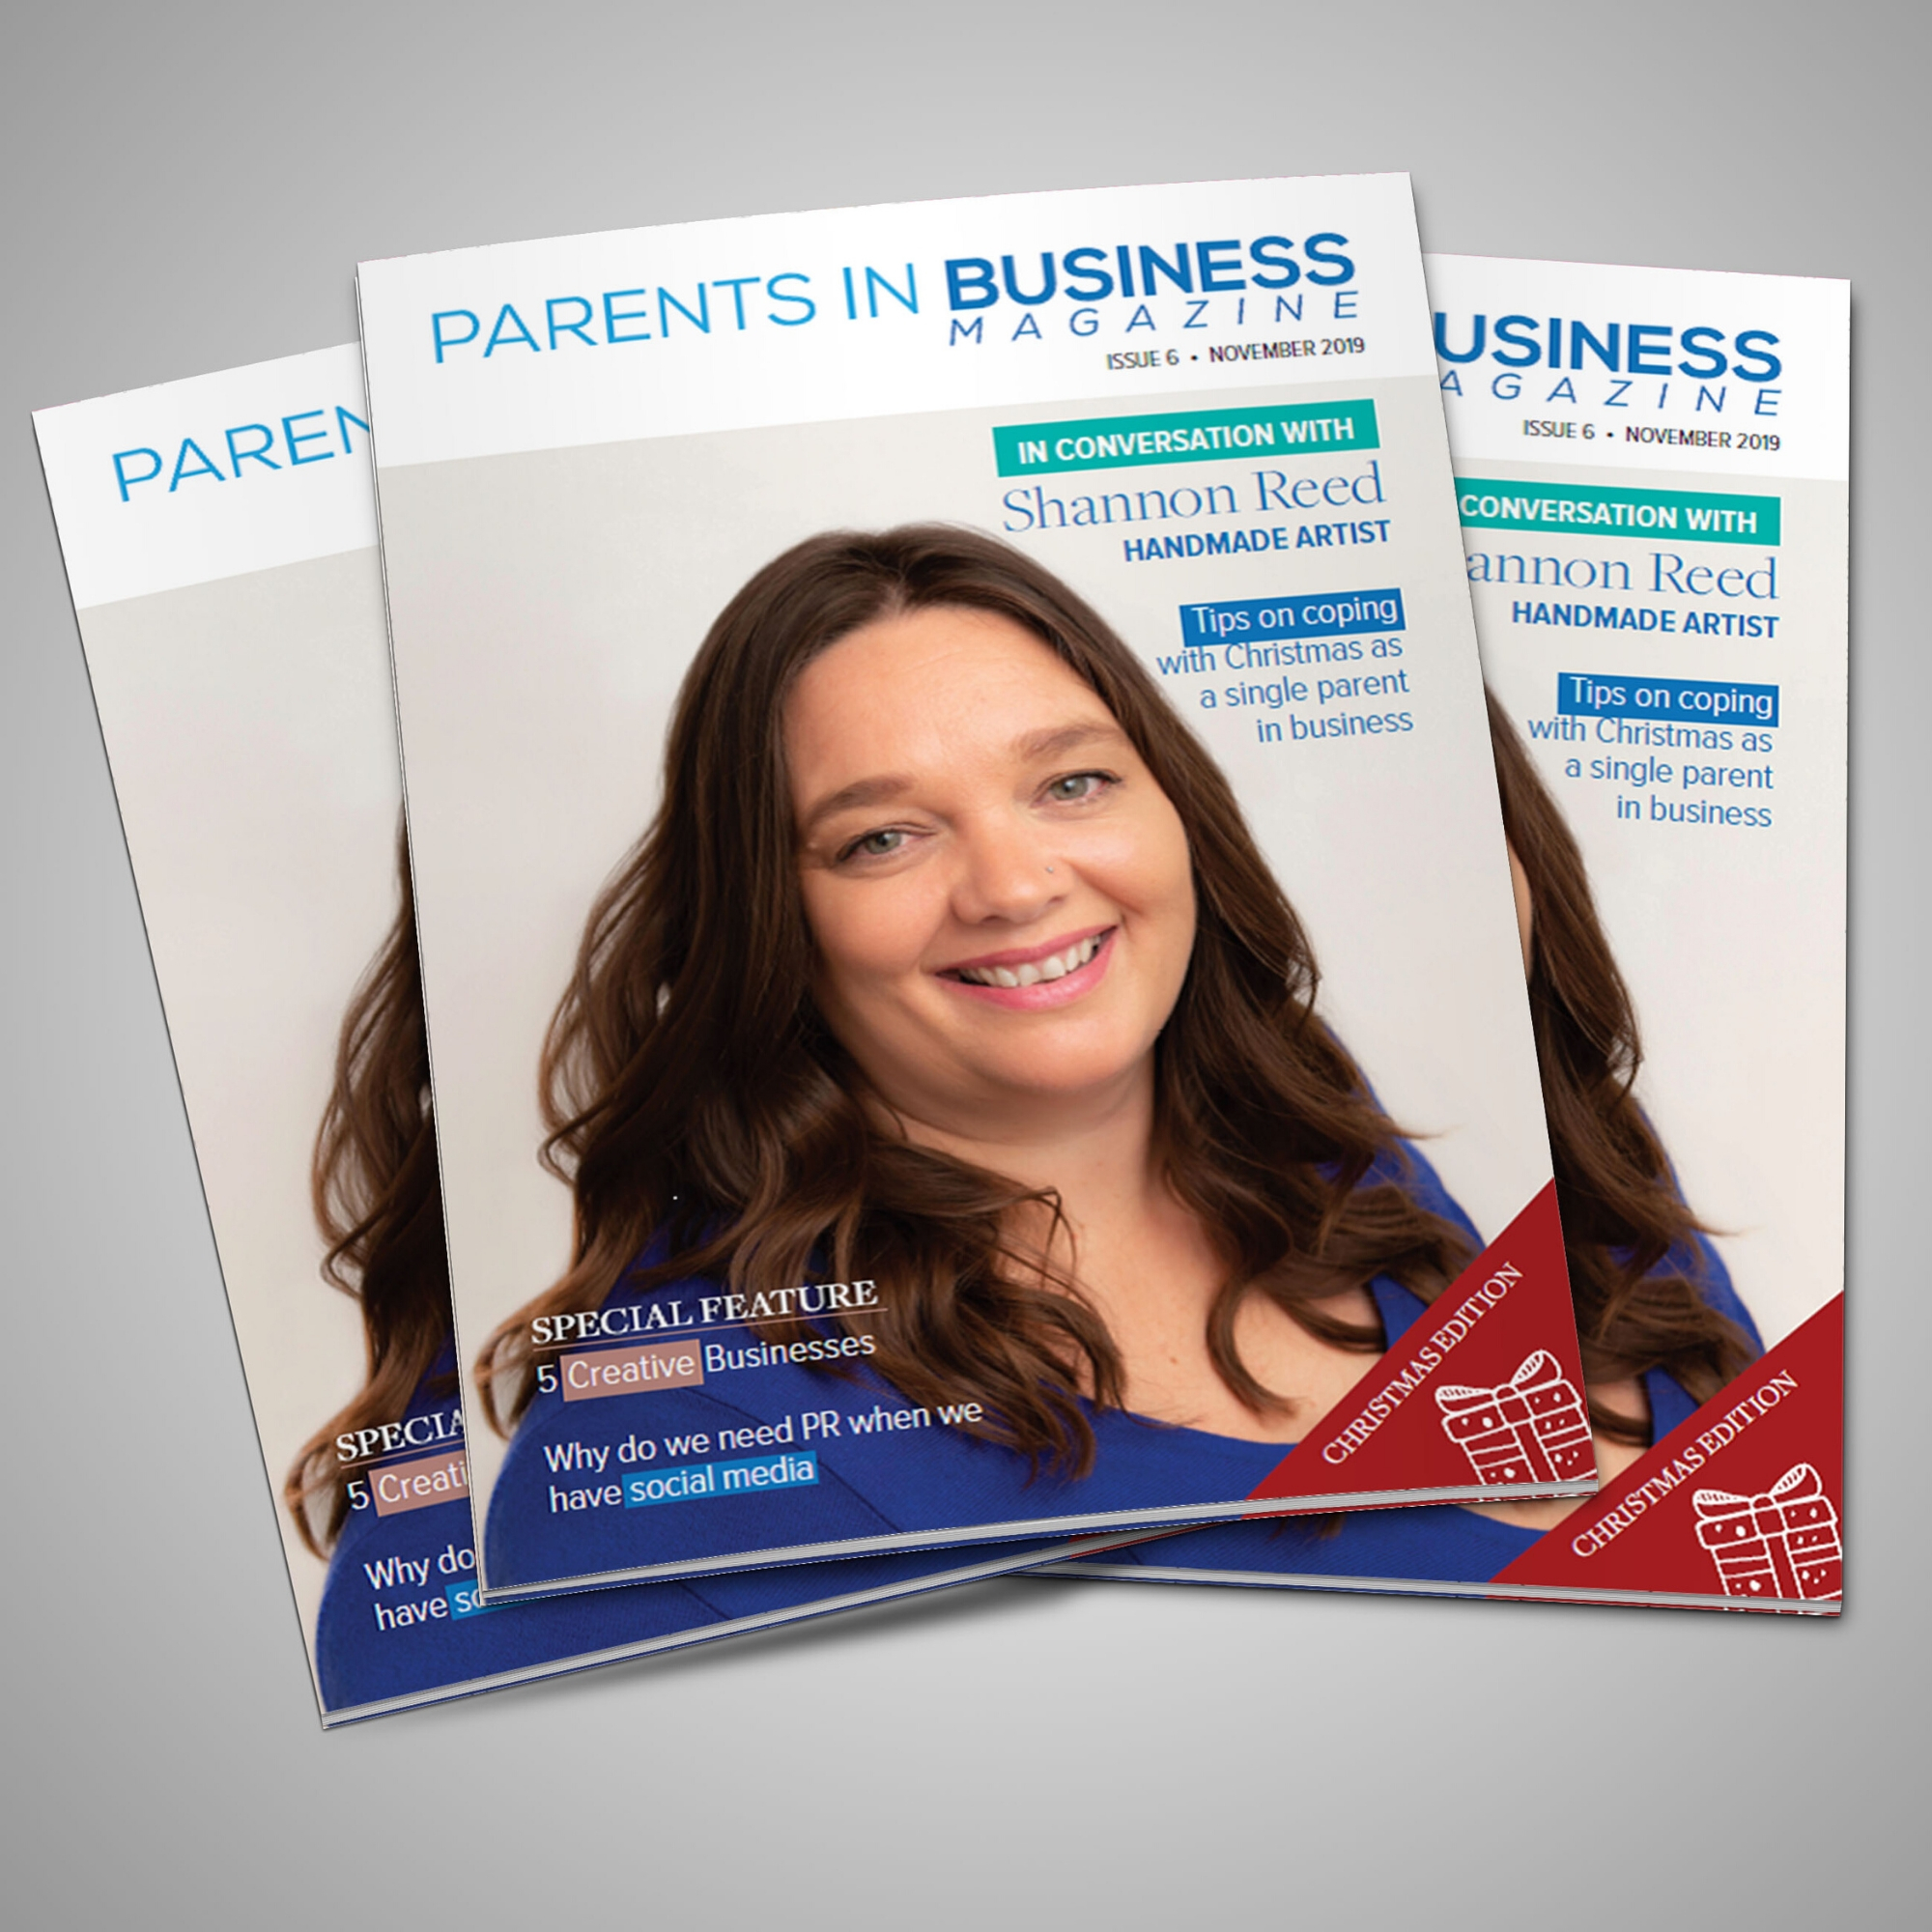 Parents in Business Magazine Issue 6